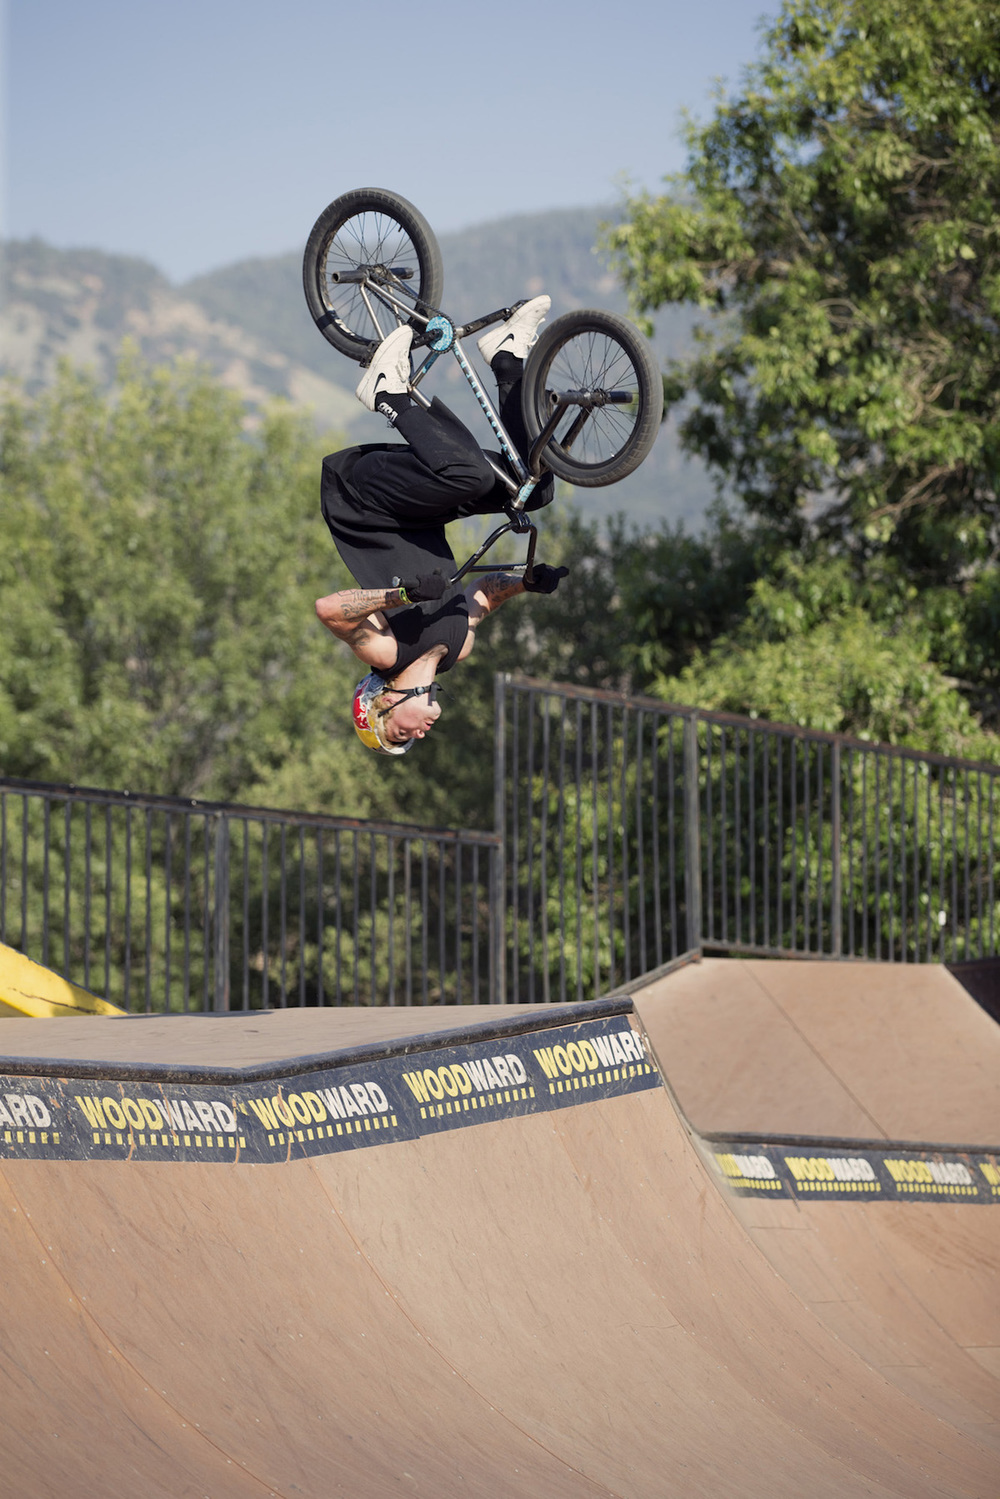 Kriss_KYle_flip_manual_line_Losey.jpg